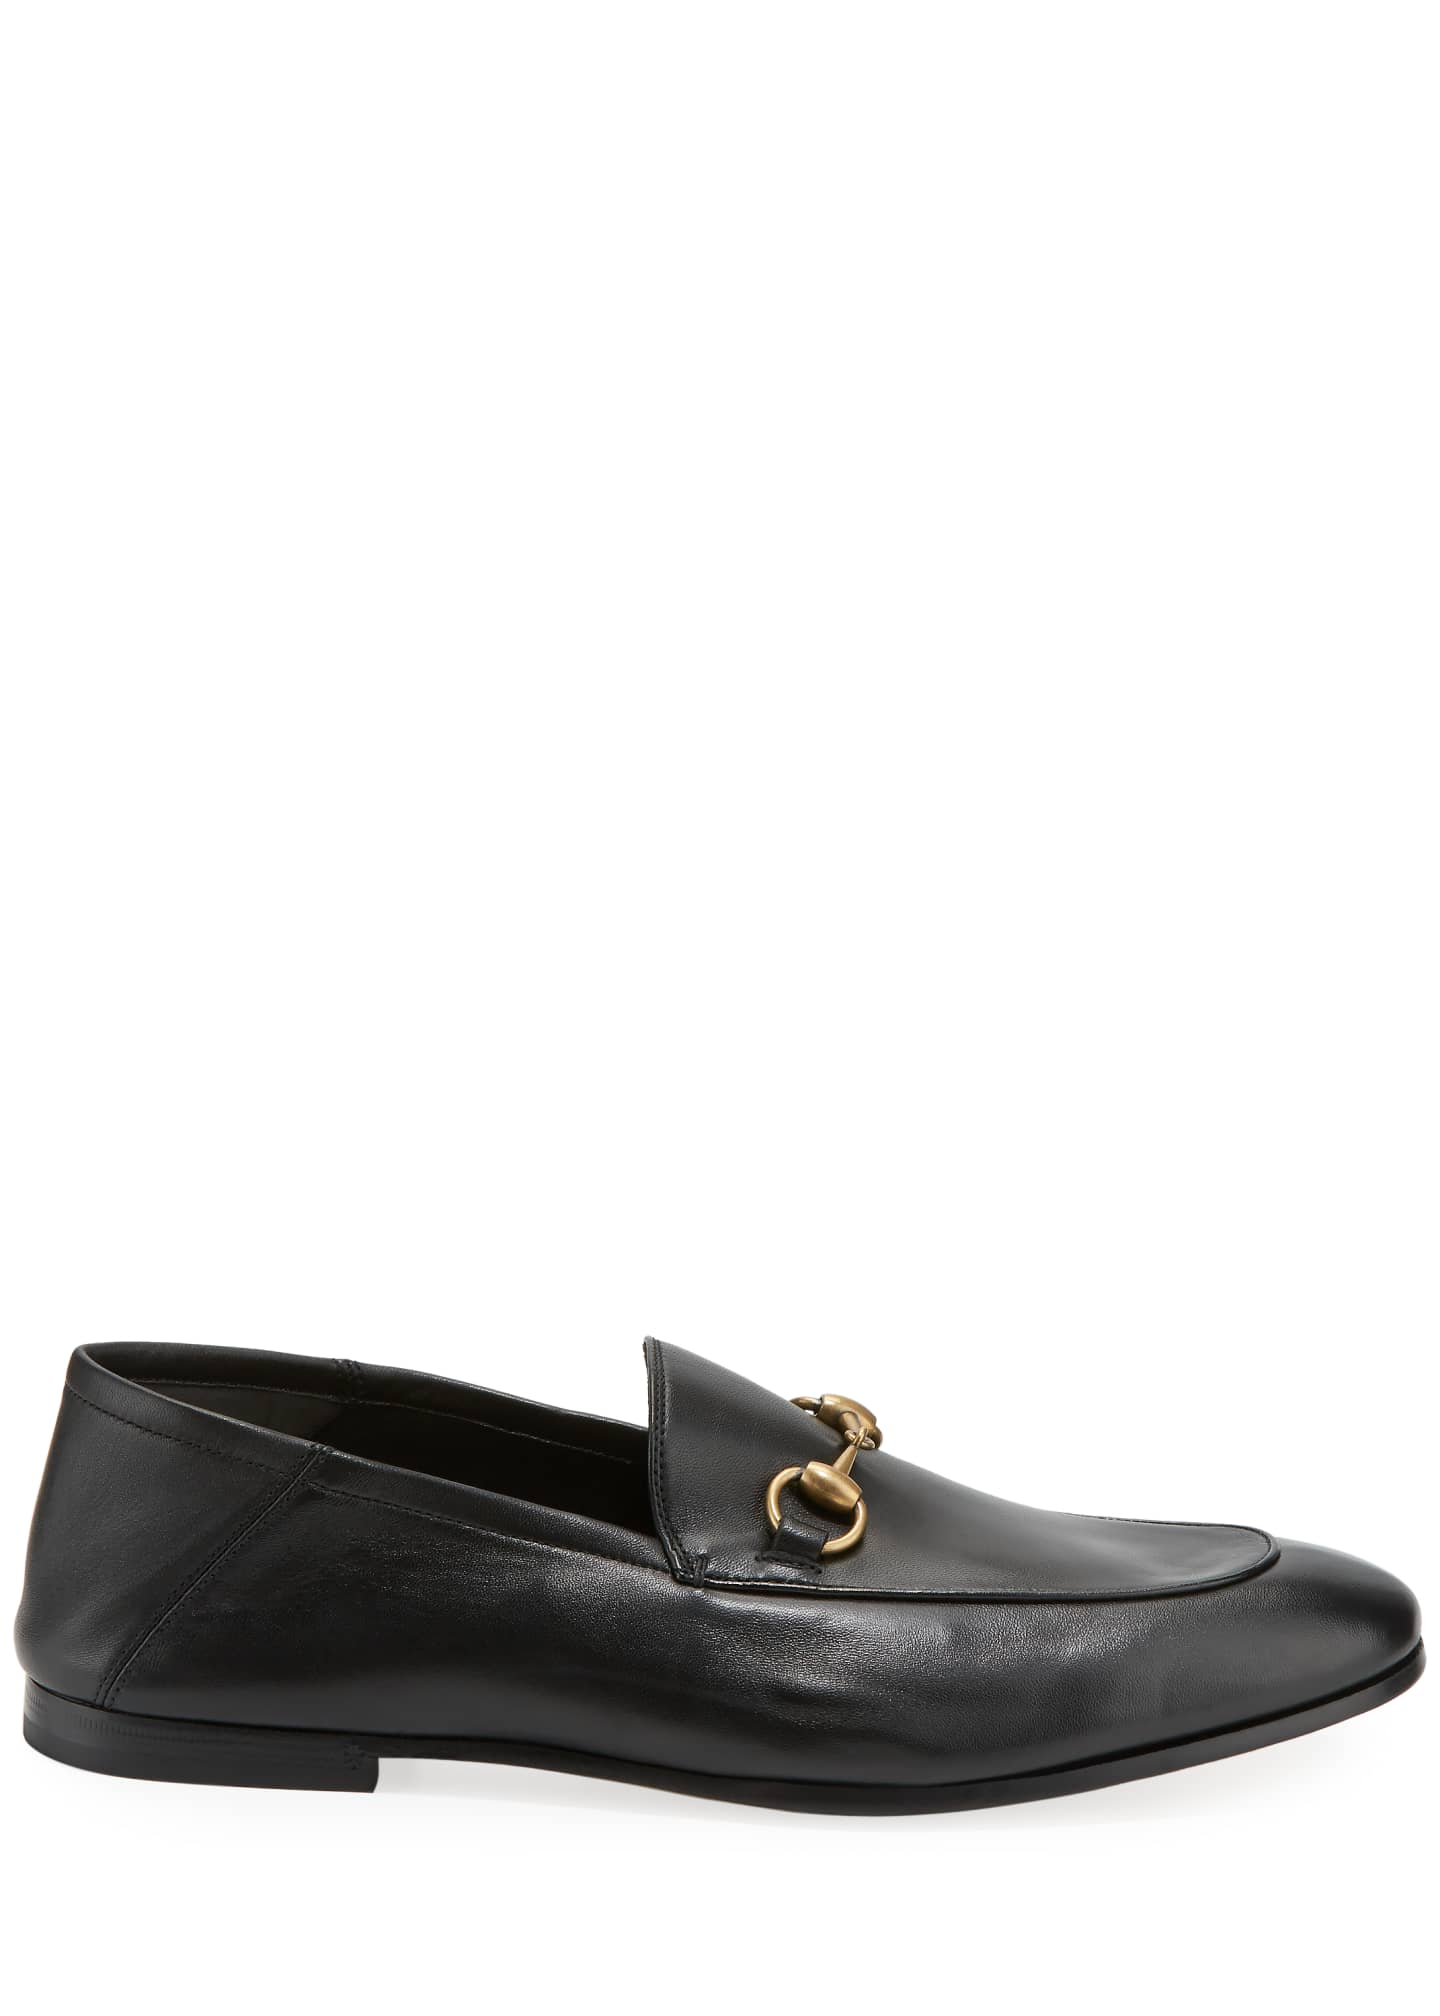 Image 2 of 4: Brixton Soft Leather Bit-Strap Loafer